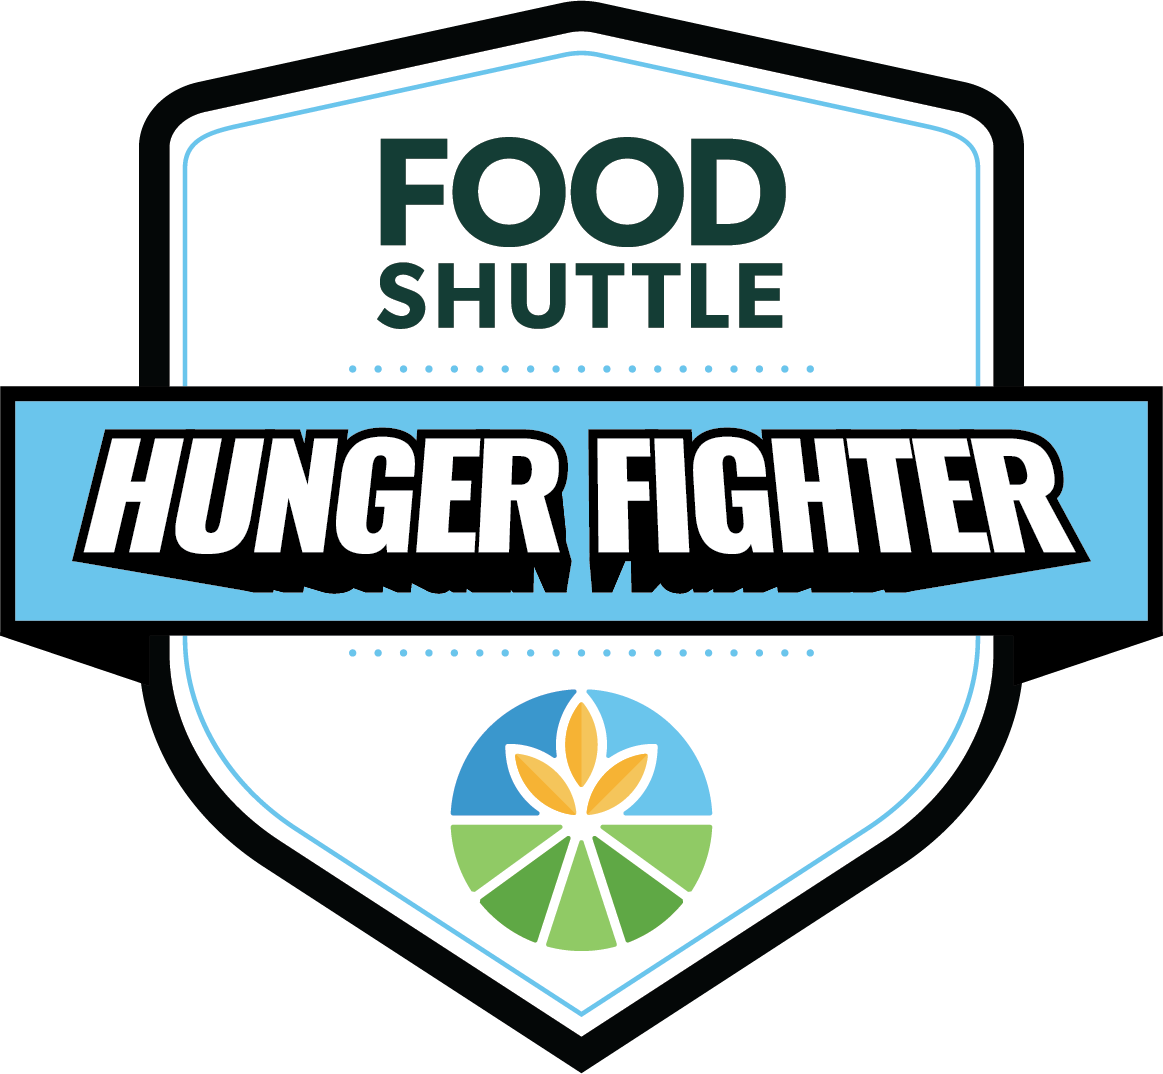 hunger-fighter-shield-color.png